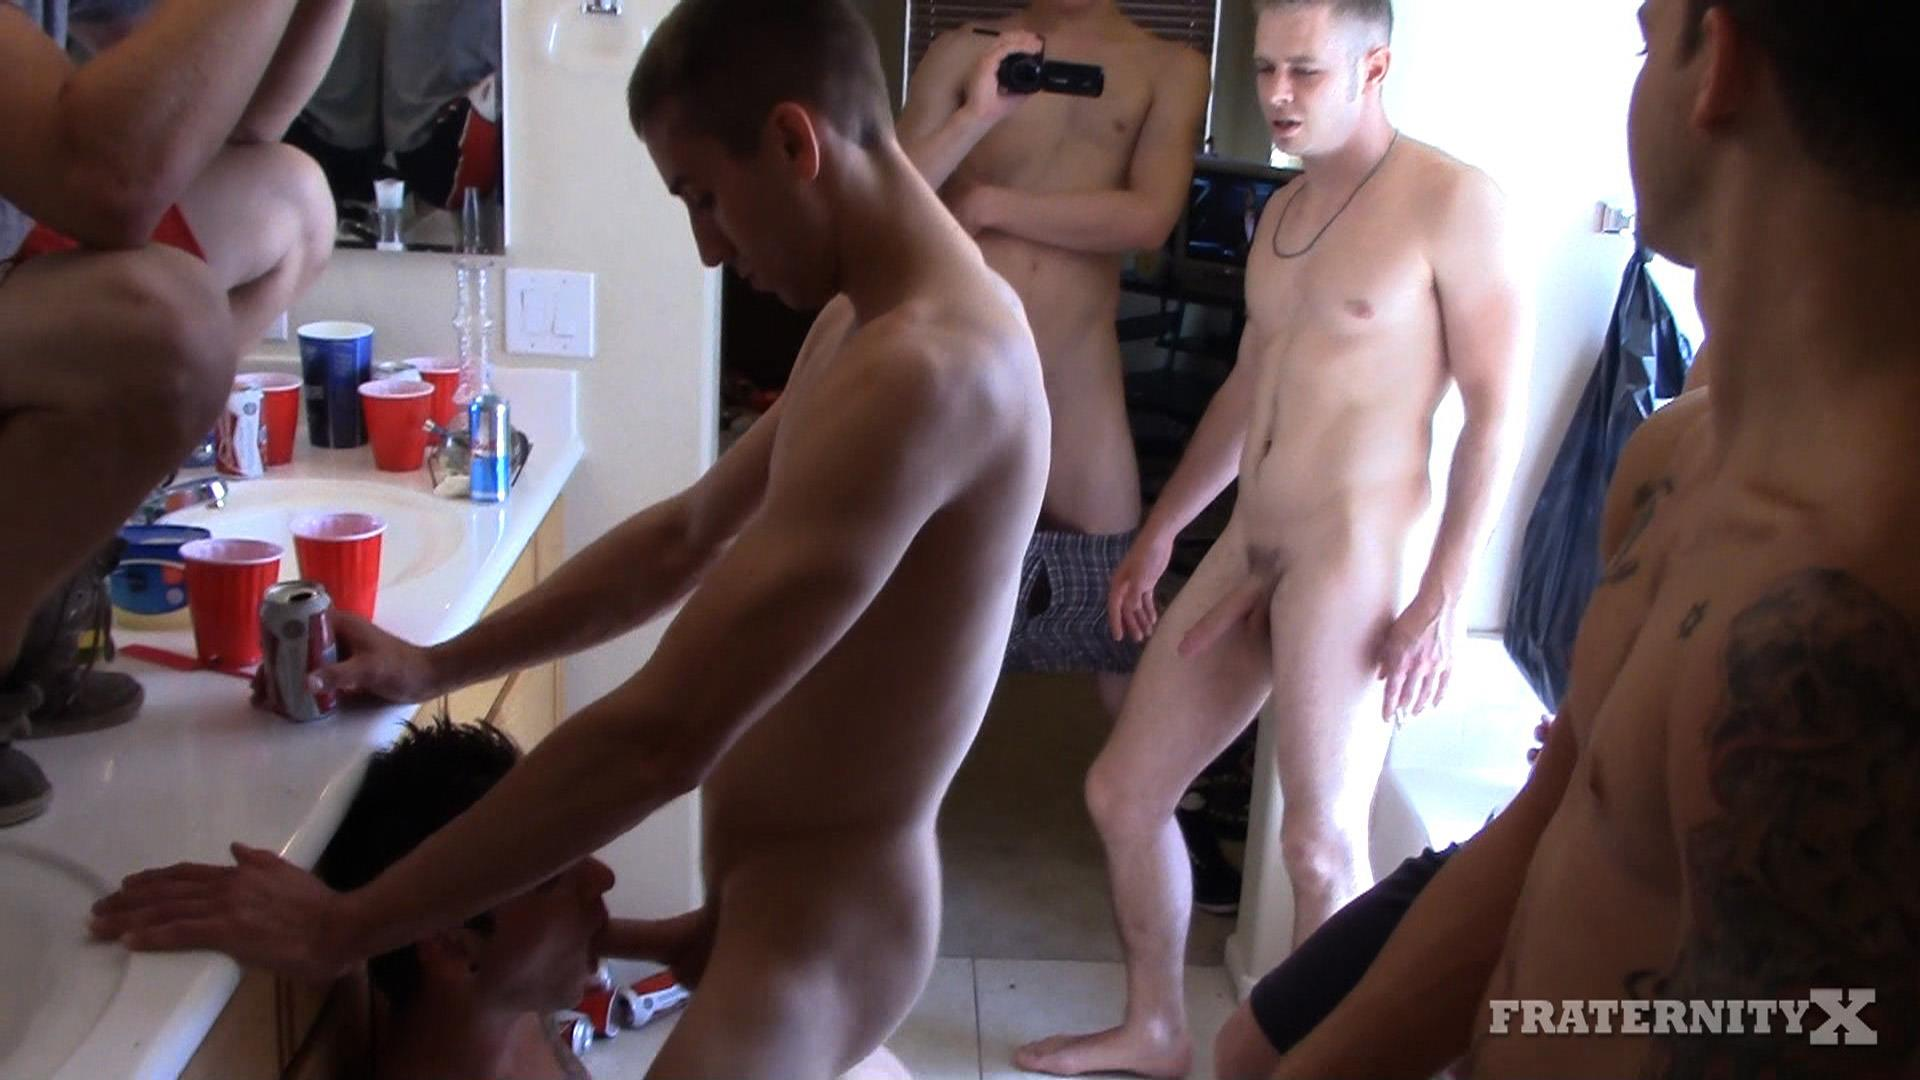 Fraternity X Frenchie Frat Guys Bareback Gang Bang In The Shower Amateur Gay Porn 15 Real Fraternity Boys Barebacking In The Frat Shower